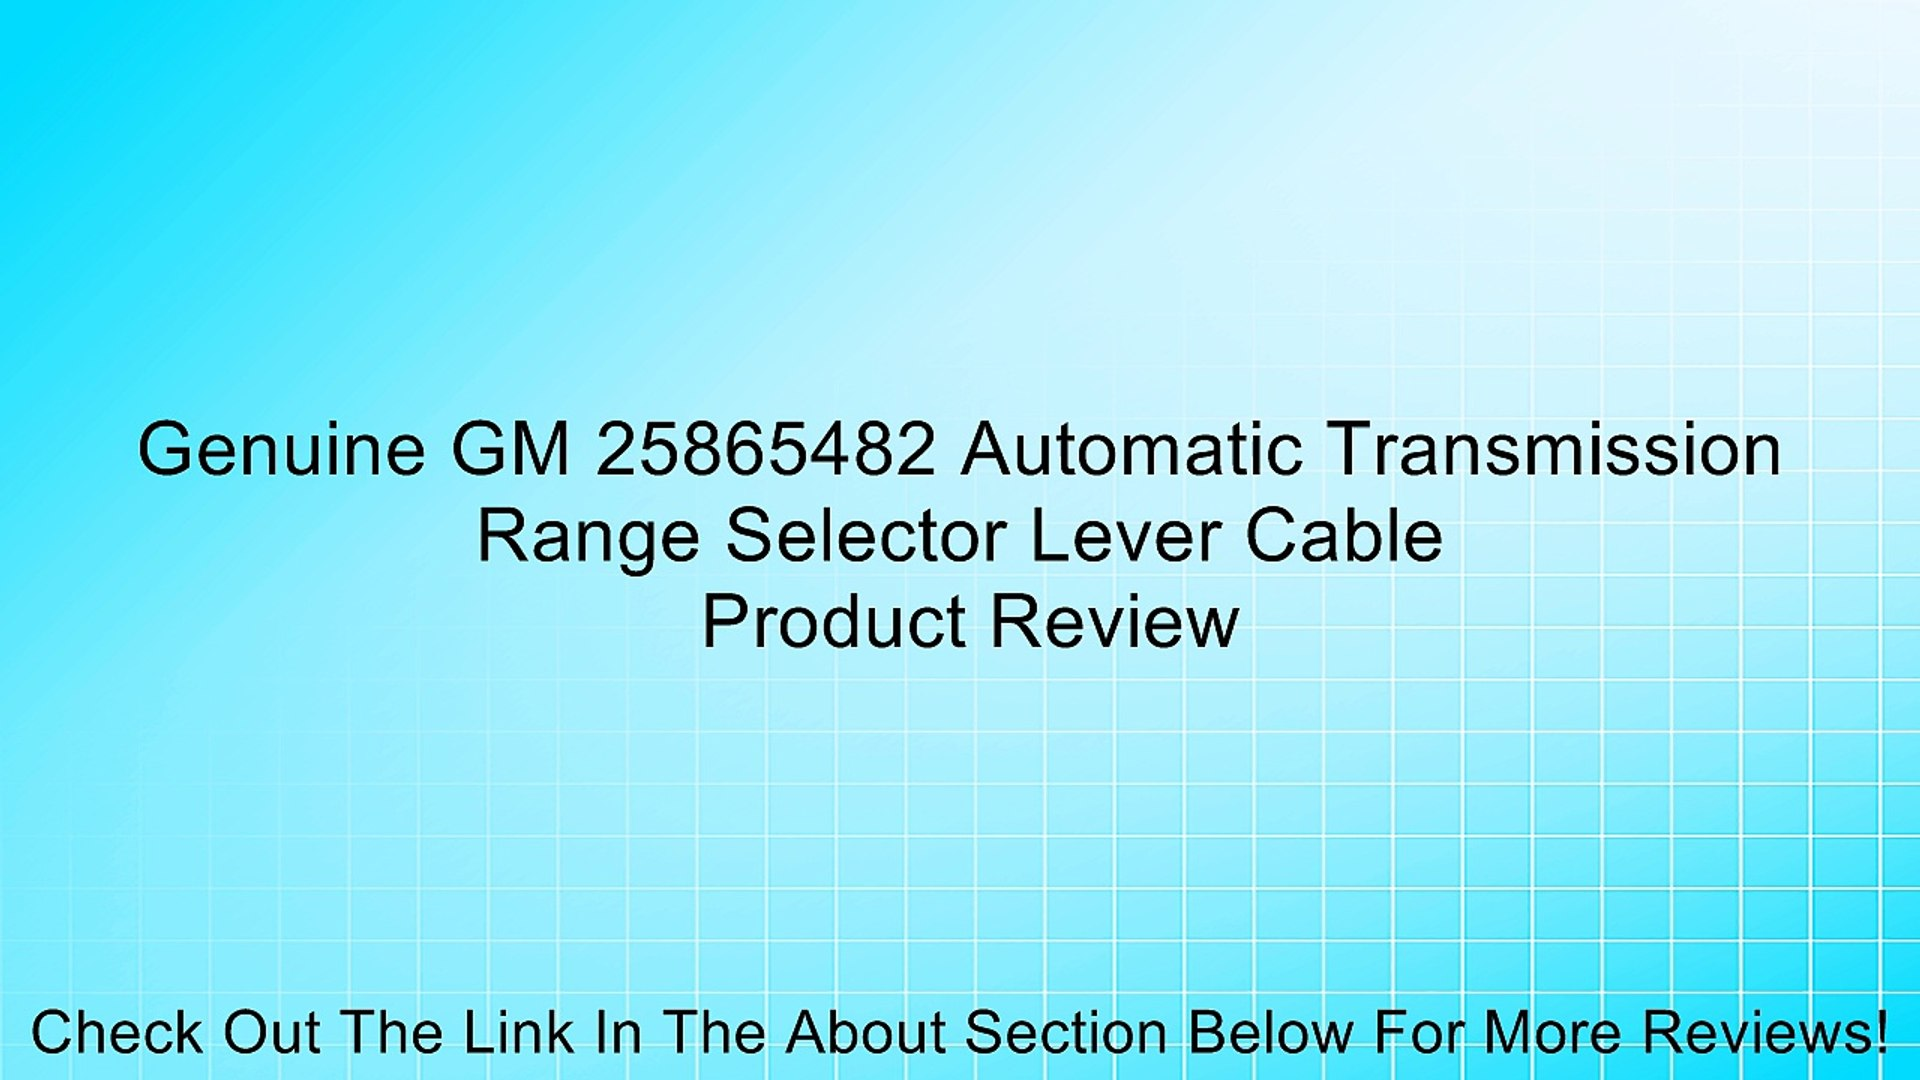 Genuine GM 25865482 Automatic Transmission Range Selector Lever Cable